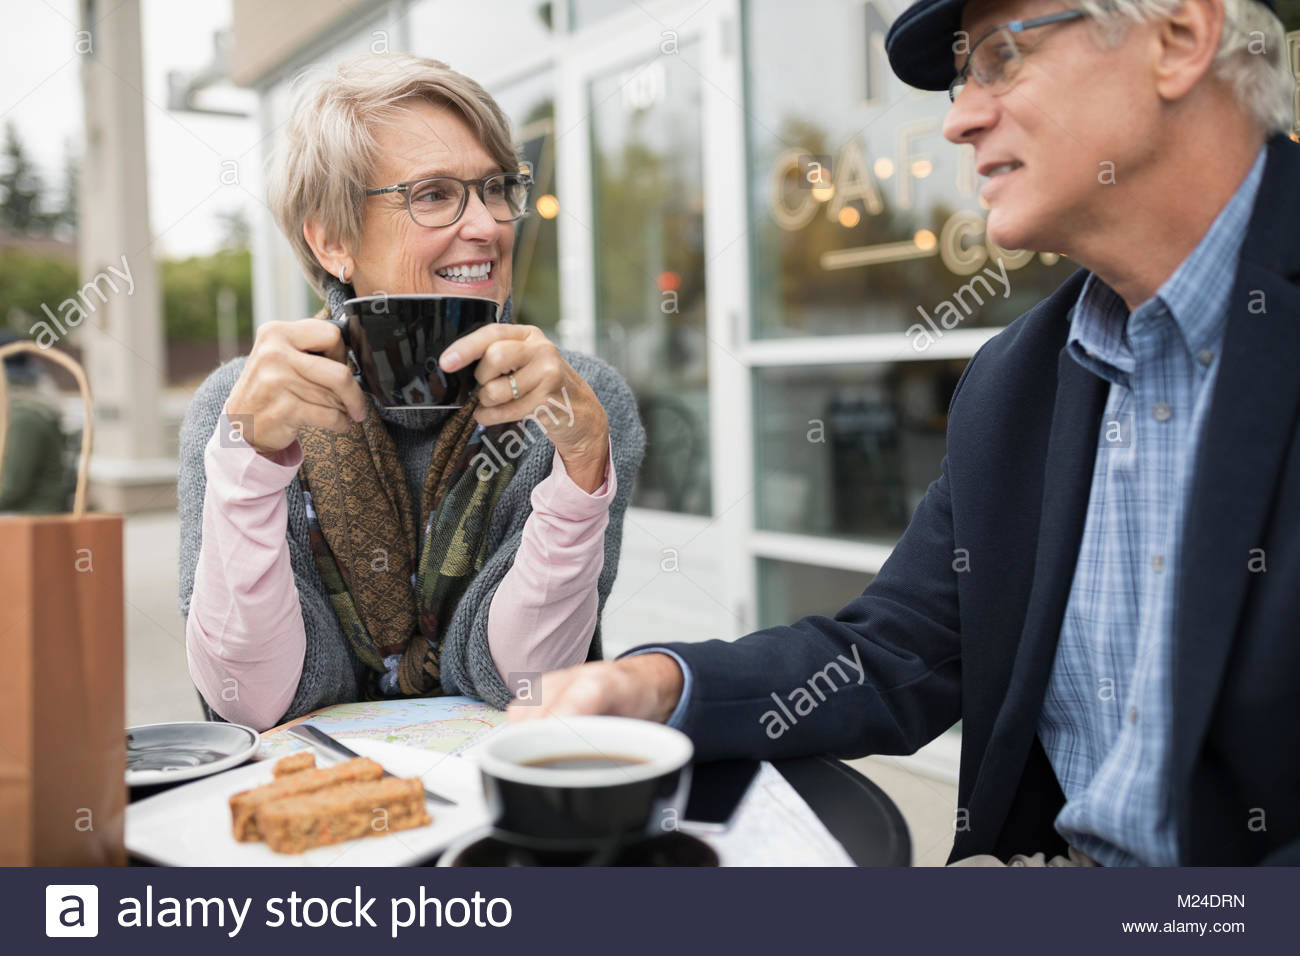 Senior couple talking and drinking coffee at sidewalk cafe Photo Stock